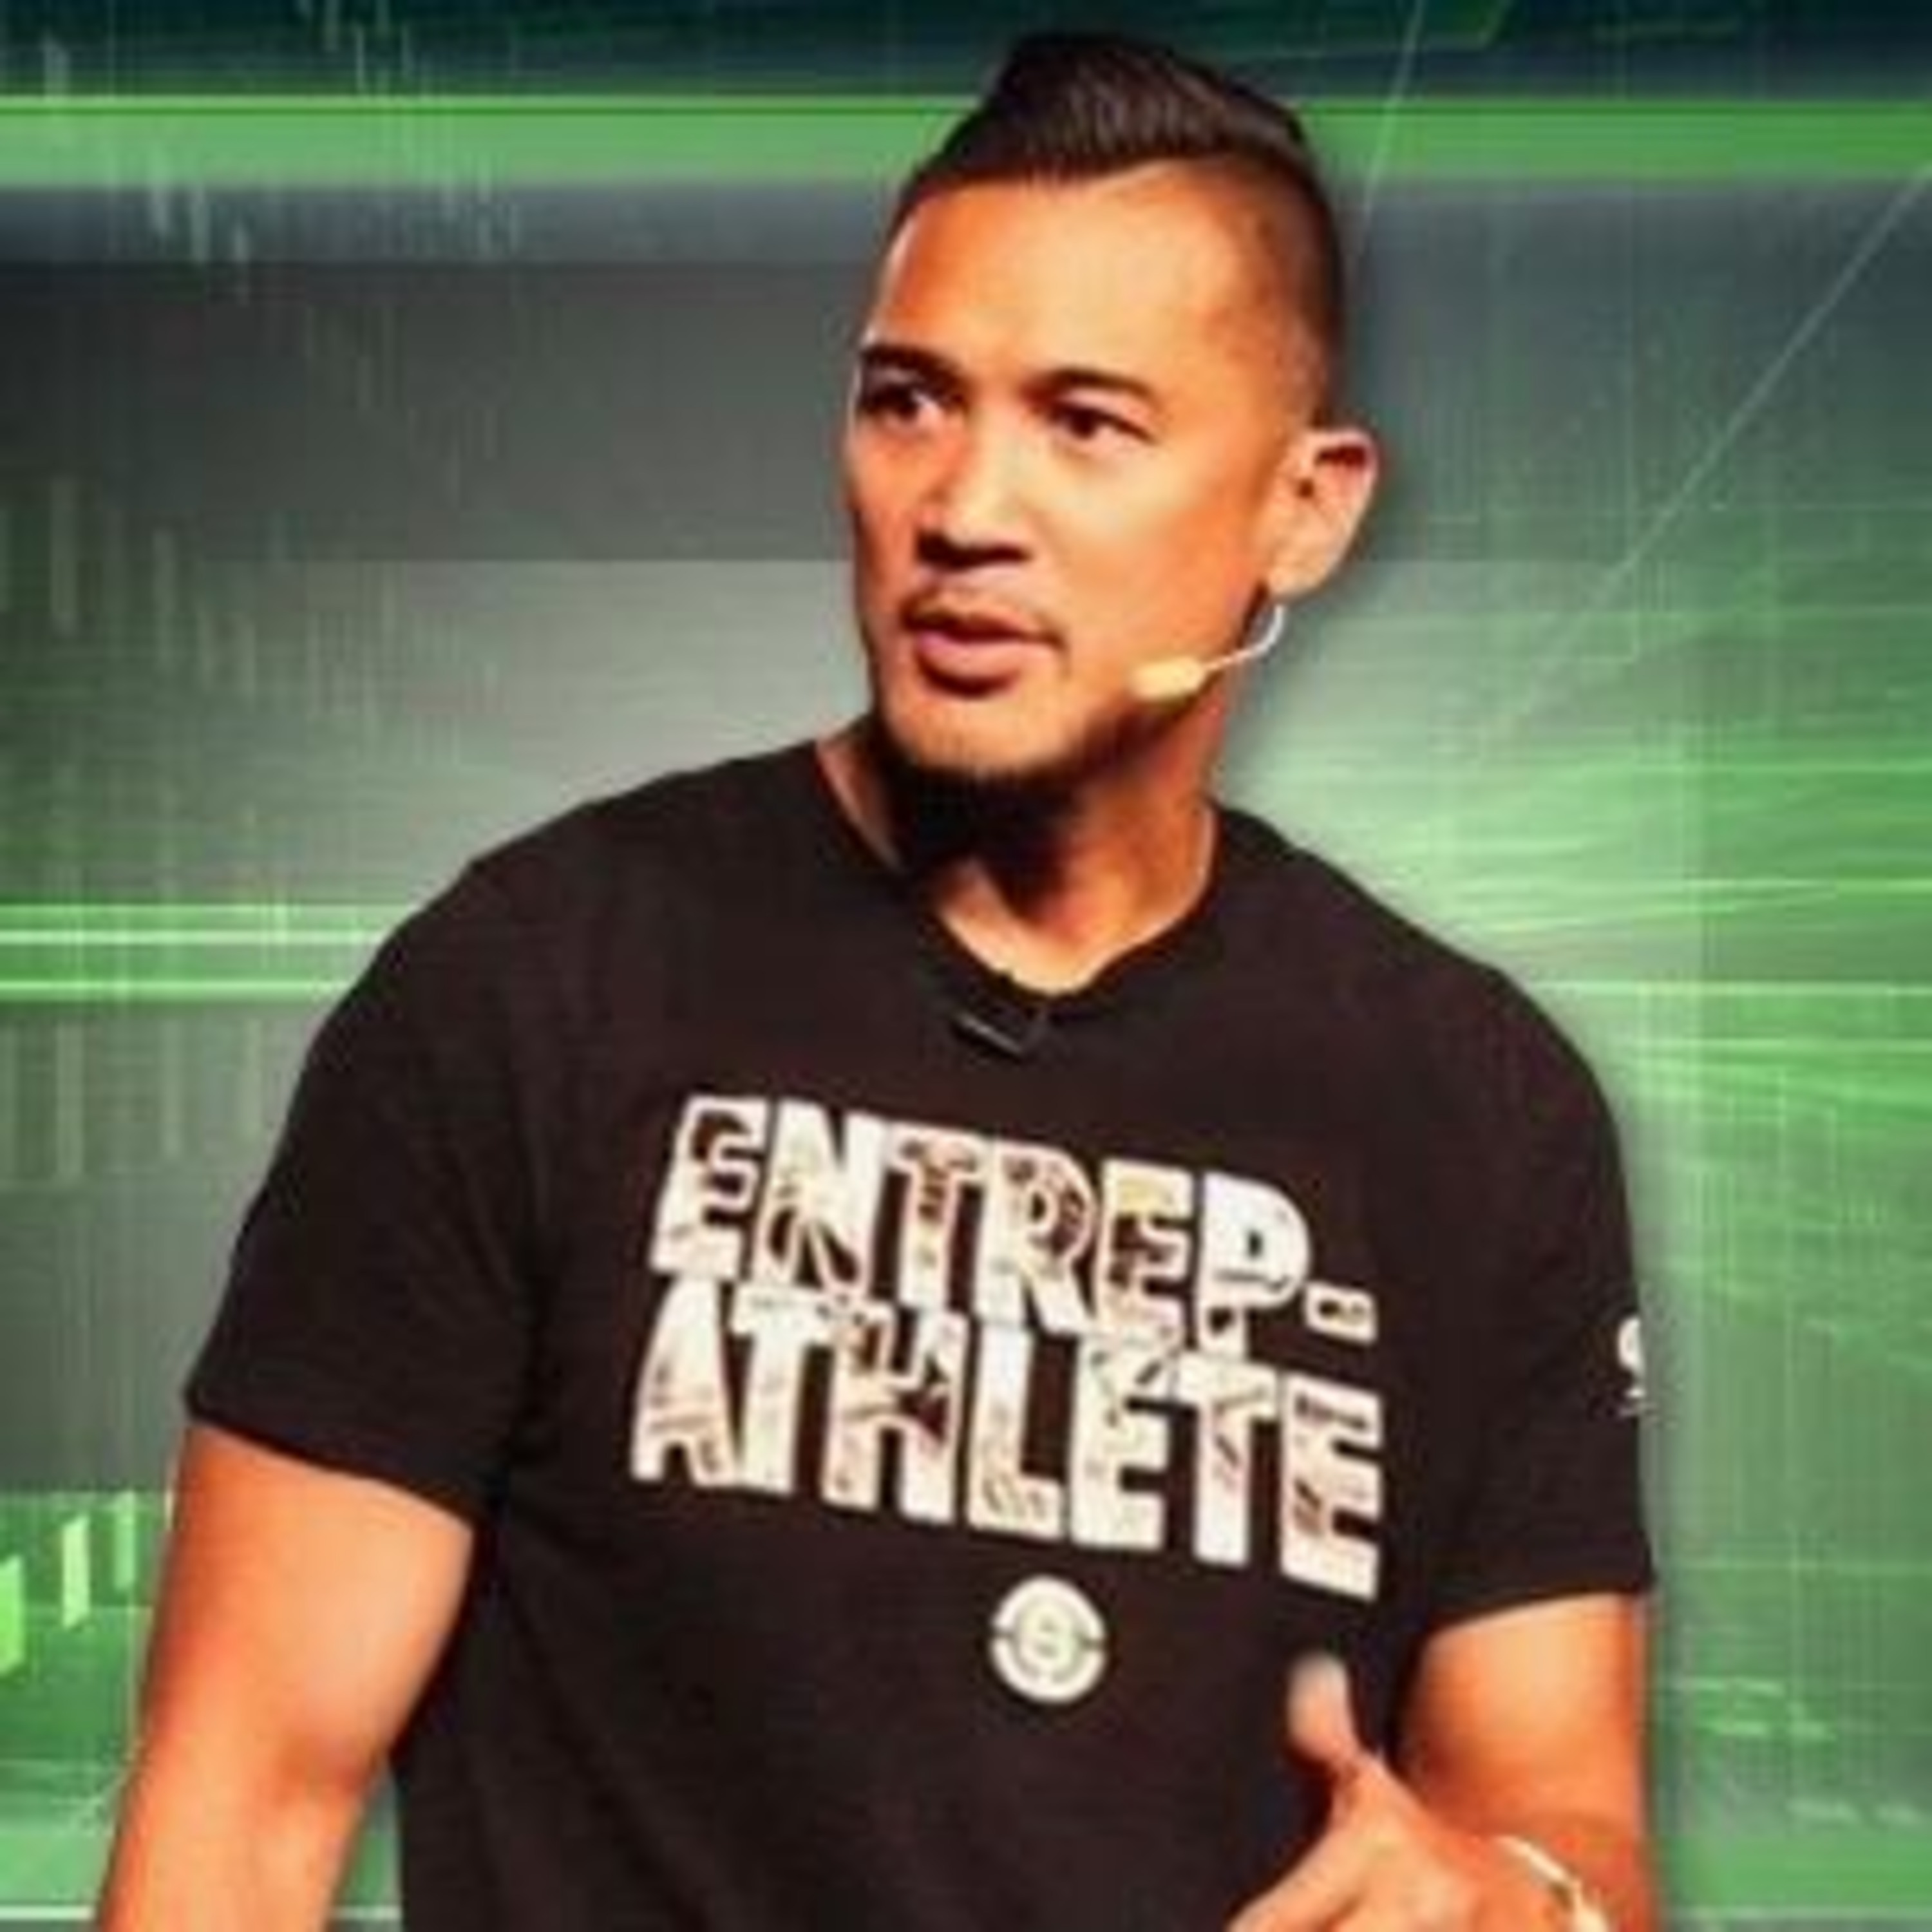 Alan Yong Improve Your Odds By The Business Blast Podcast A Circuit Kamran Ahmed Uk On Anchor